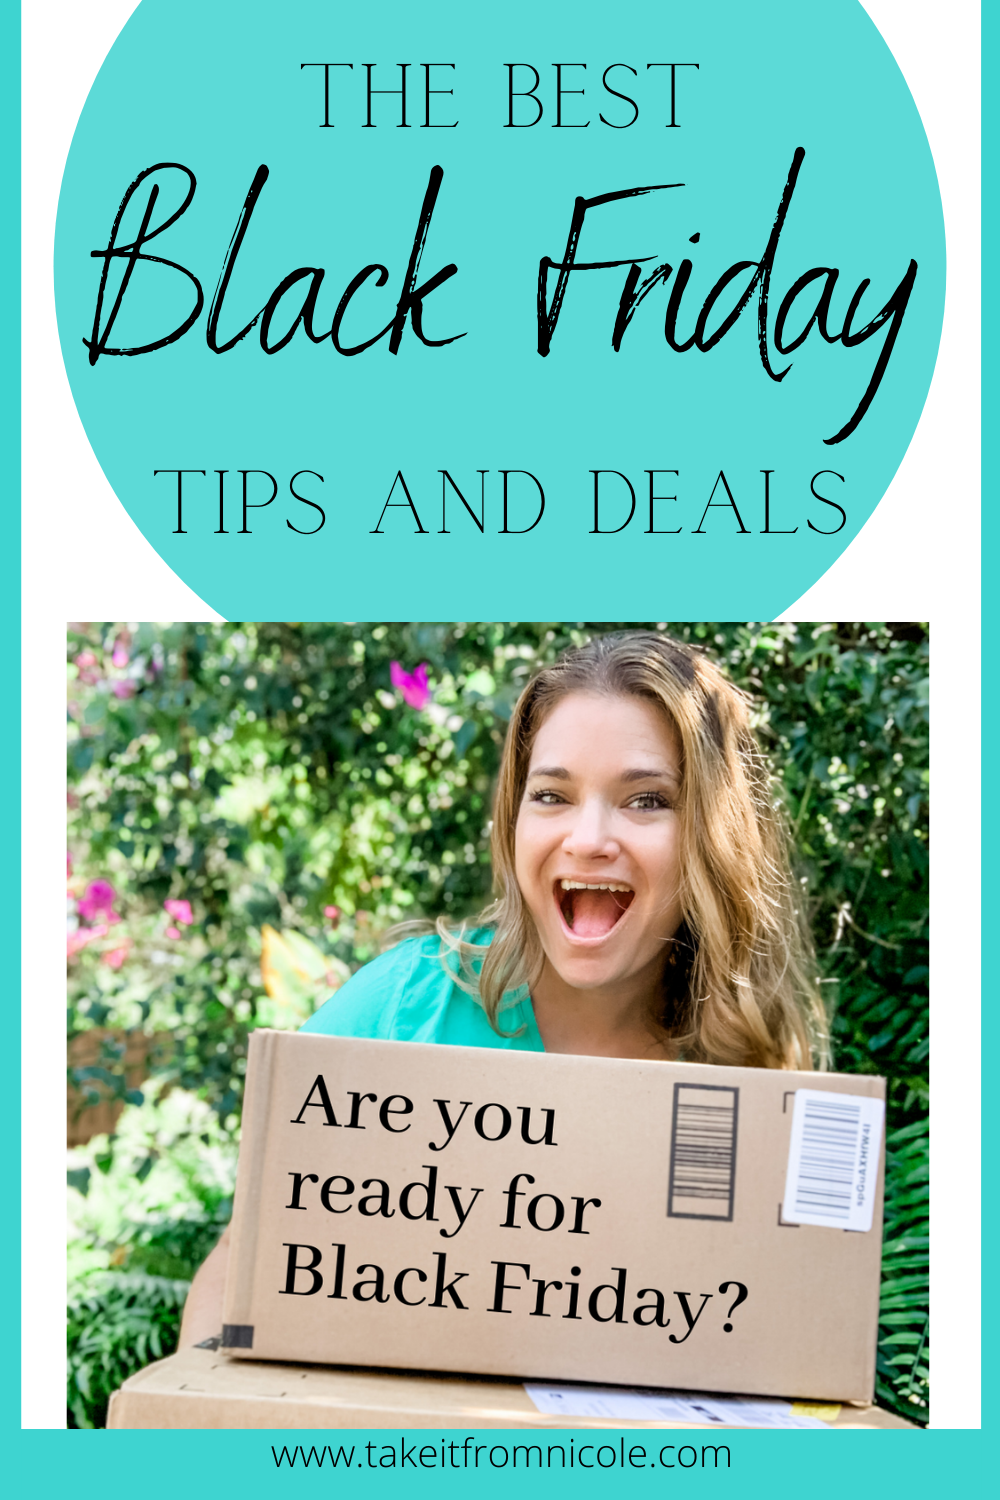 Get the inside scoop on the hottest Black Friday deals and when to shop! I outline where and when to score all the gifts on your list.